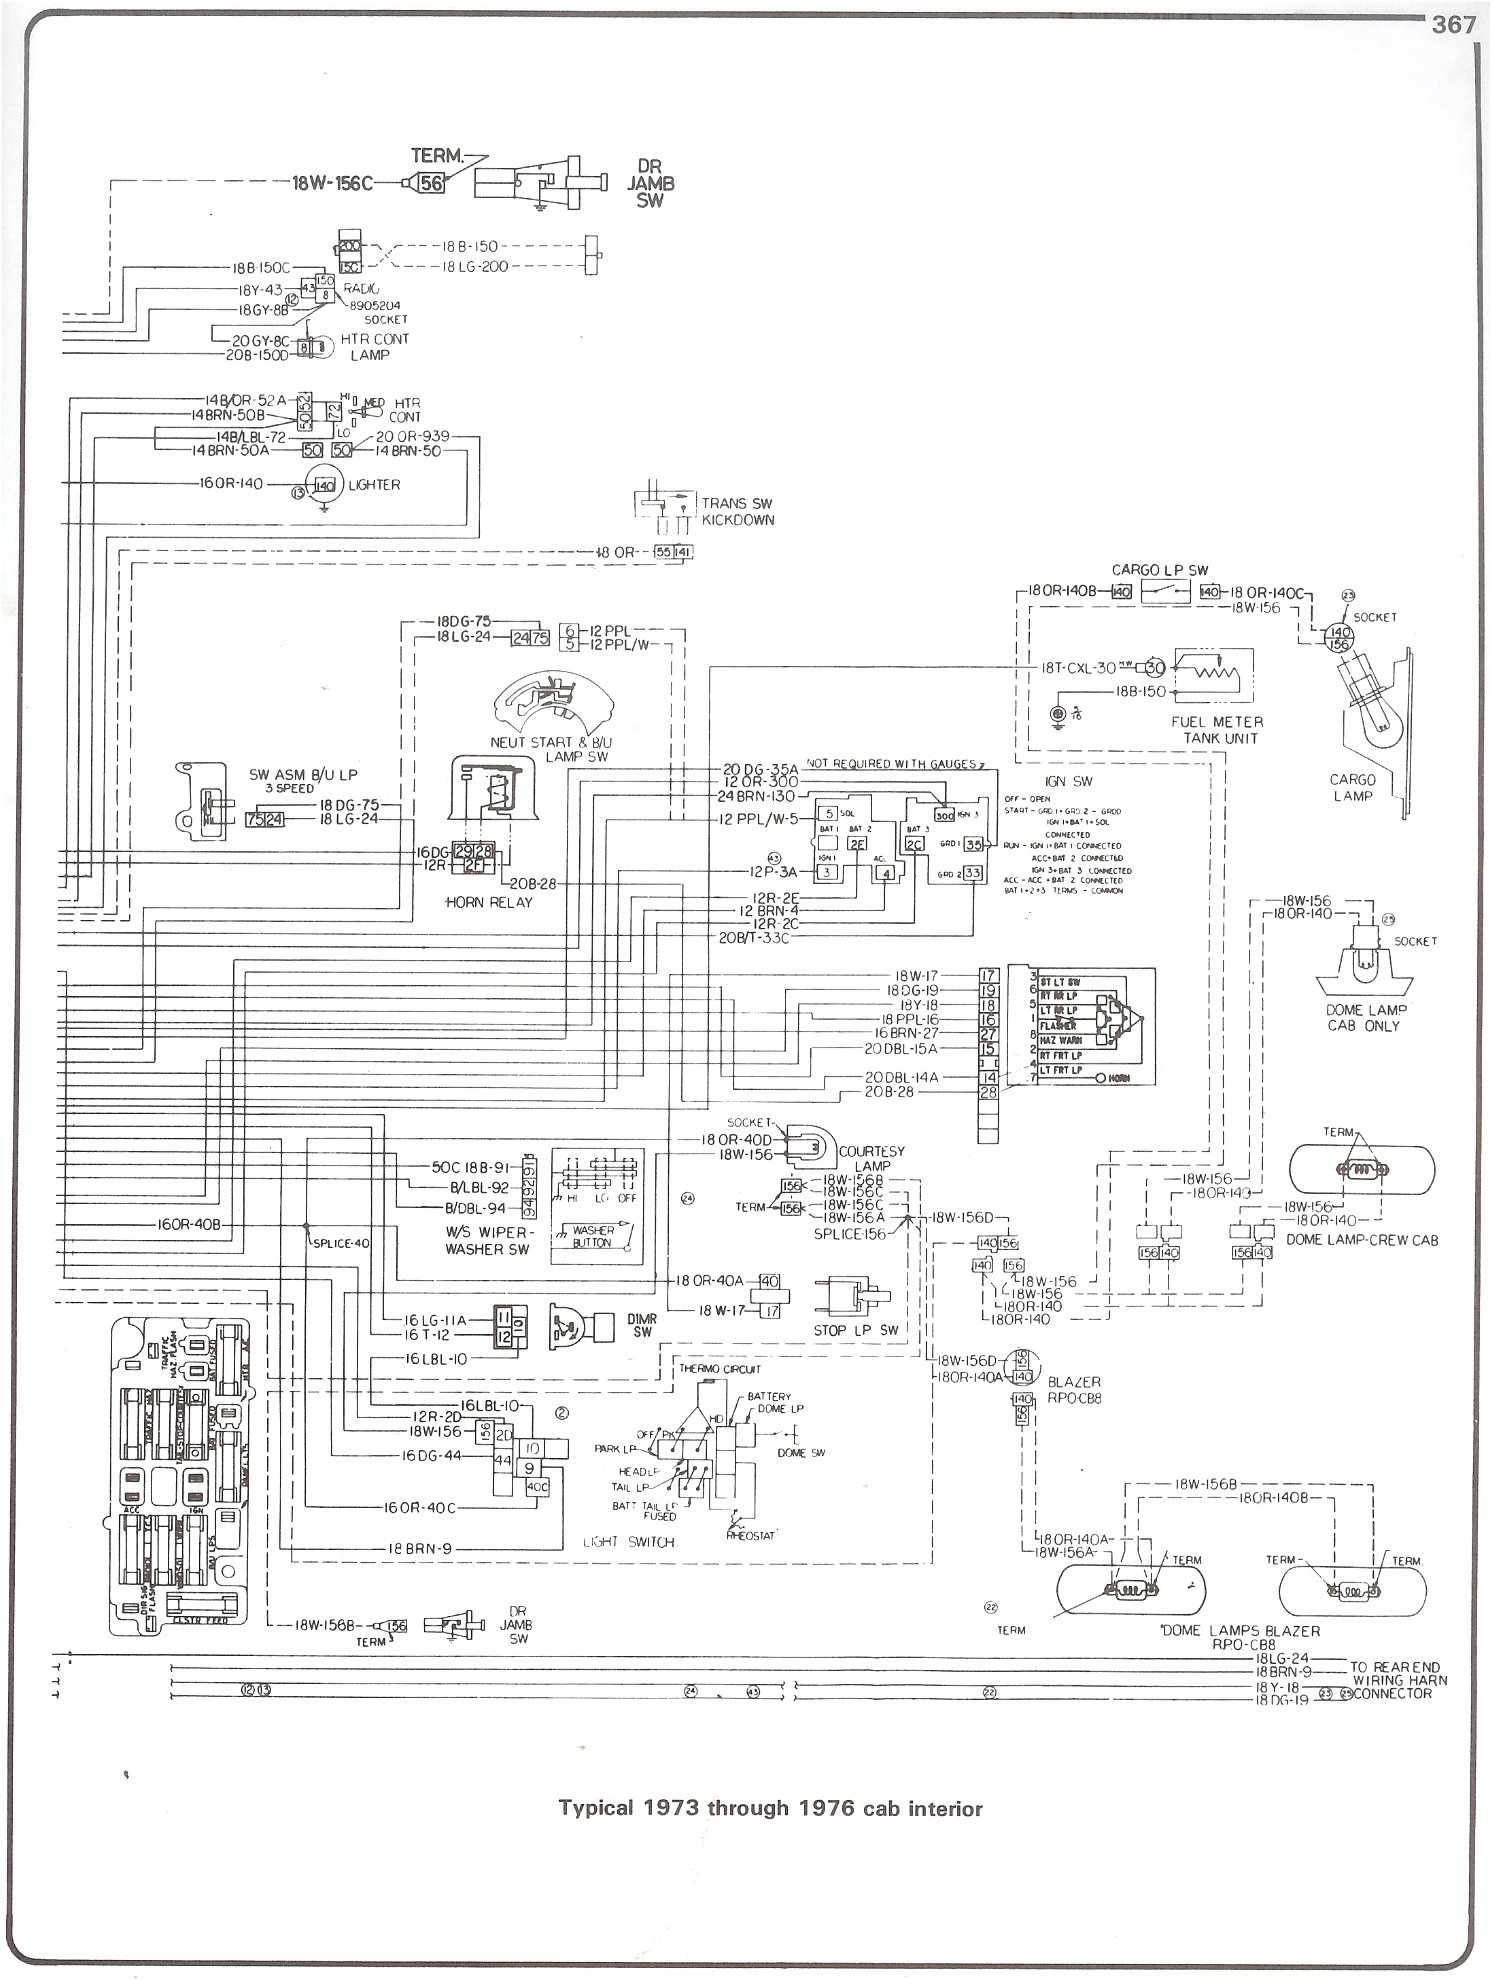 hight resolution of 73 76 cab interior complete 73 87 wiring diagrams